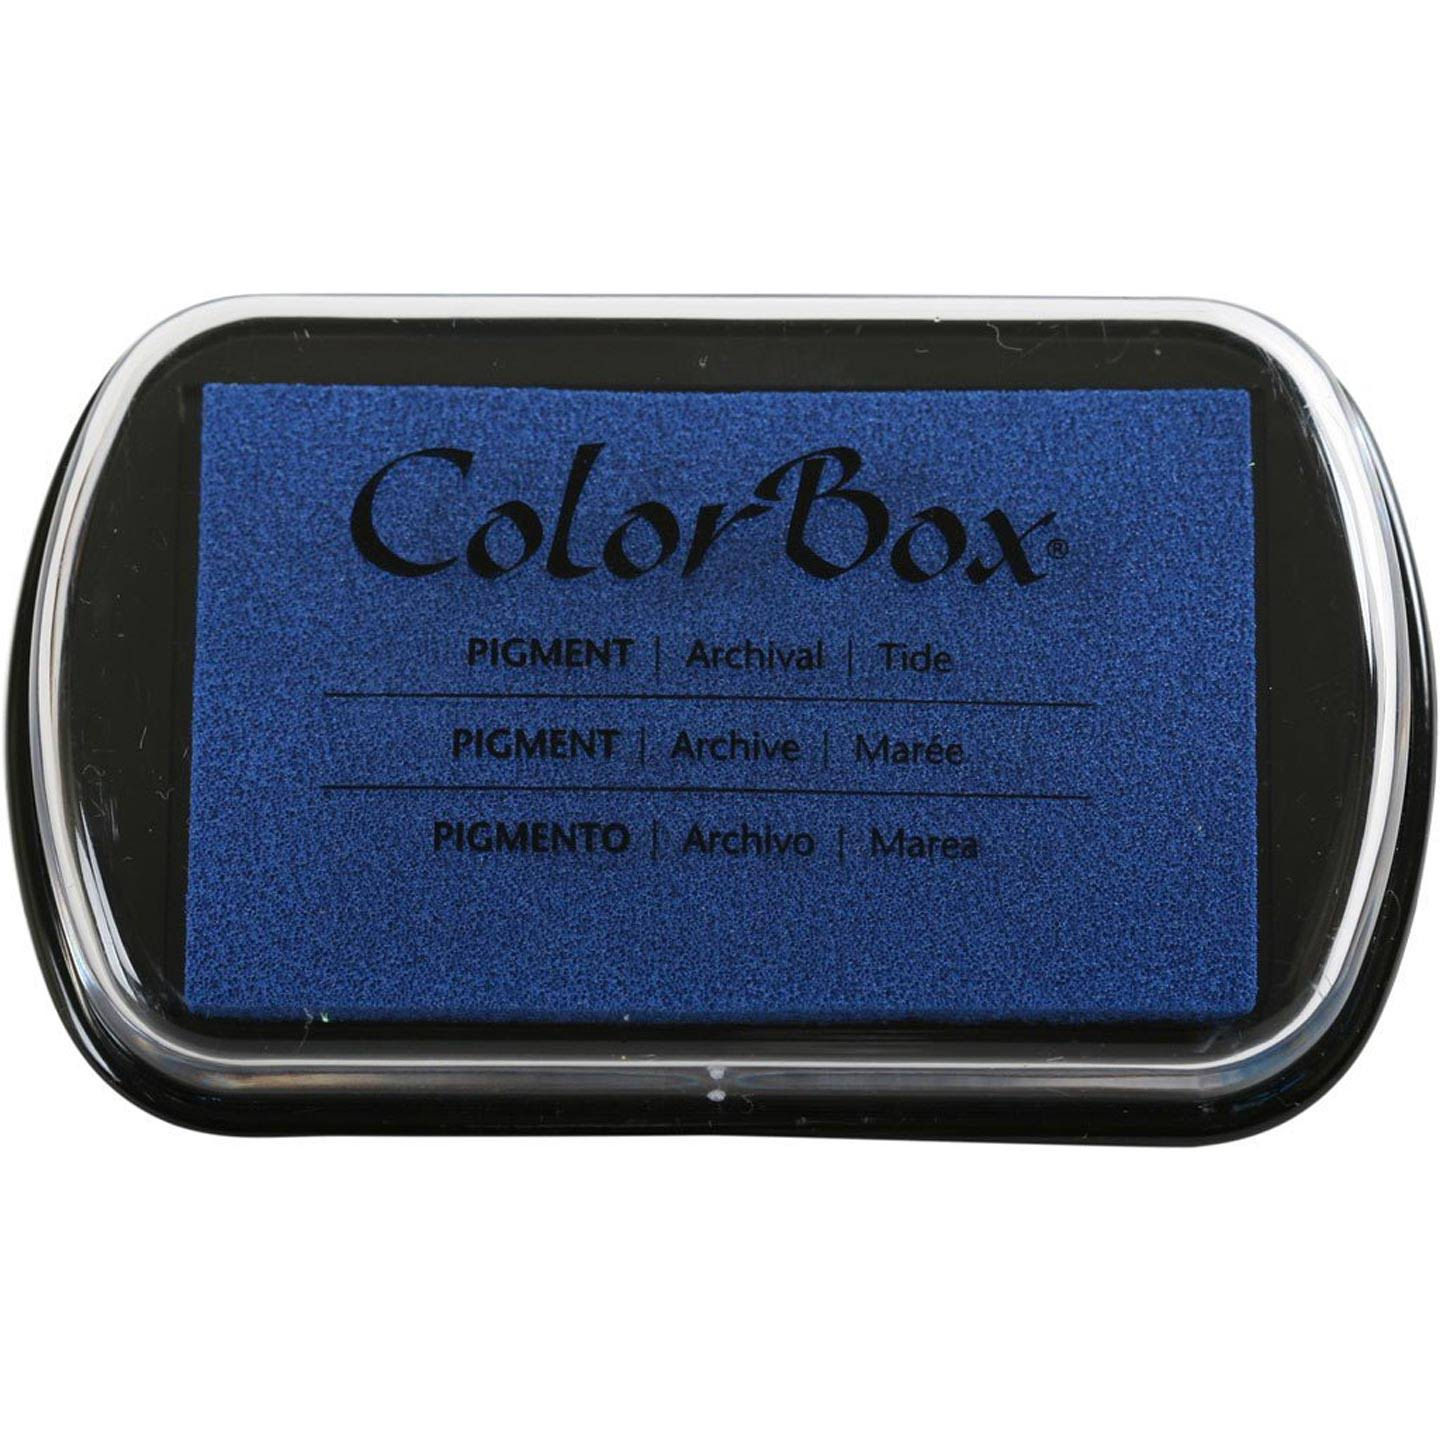 Colorbox Pigment Ink Pad - Tide